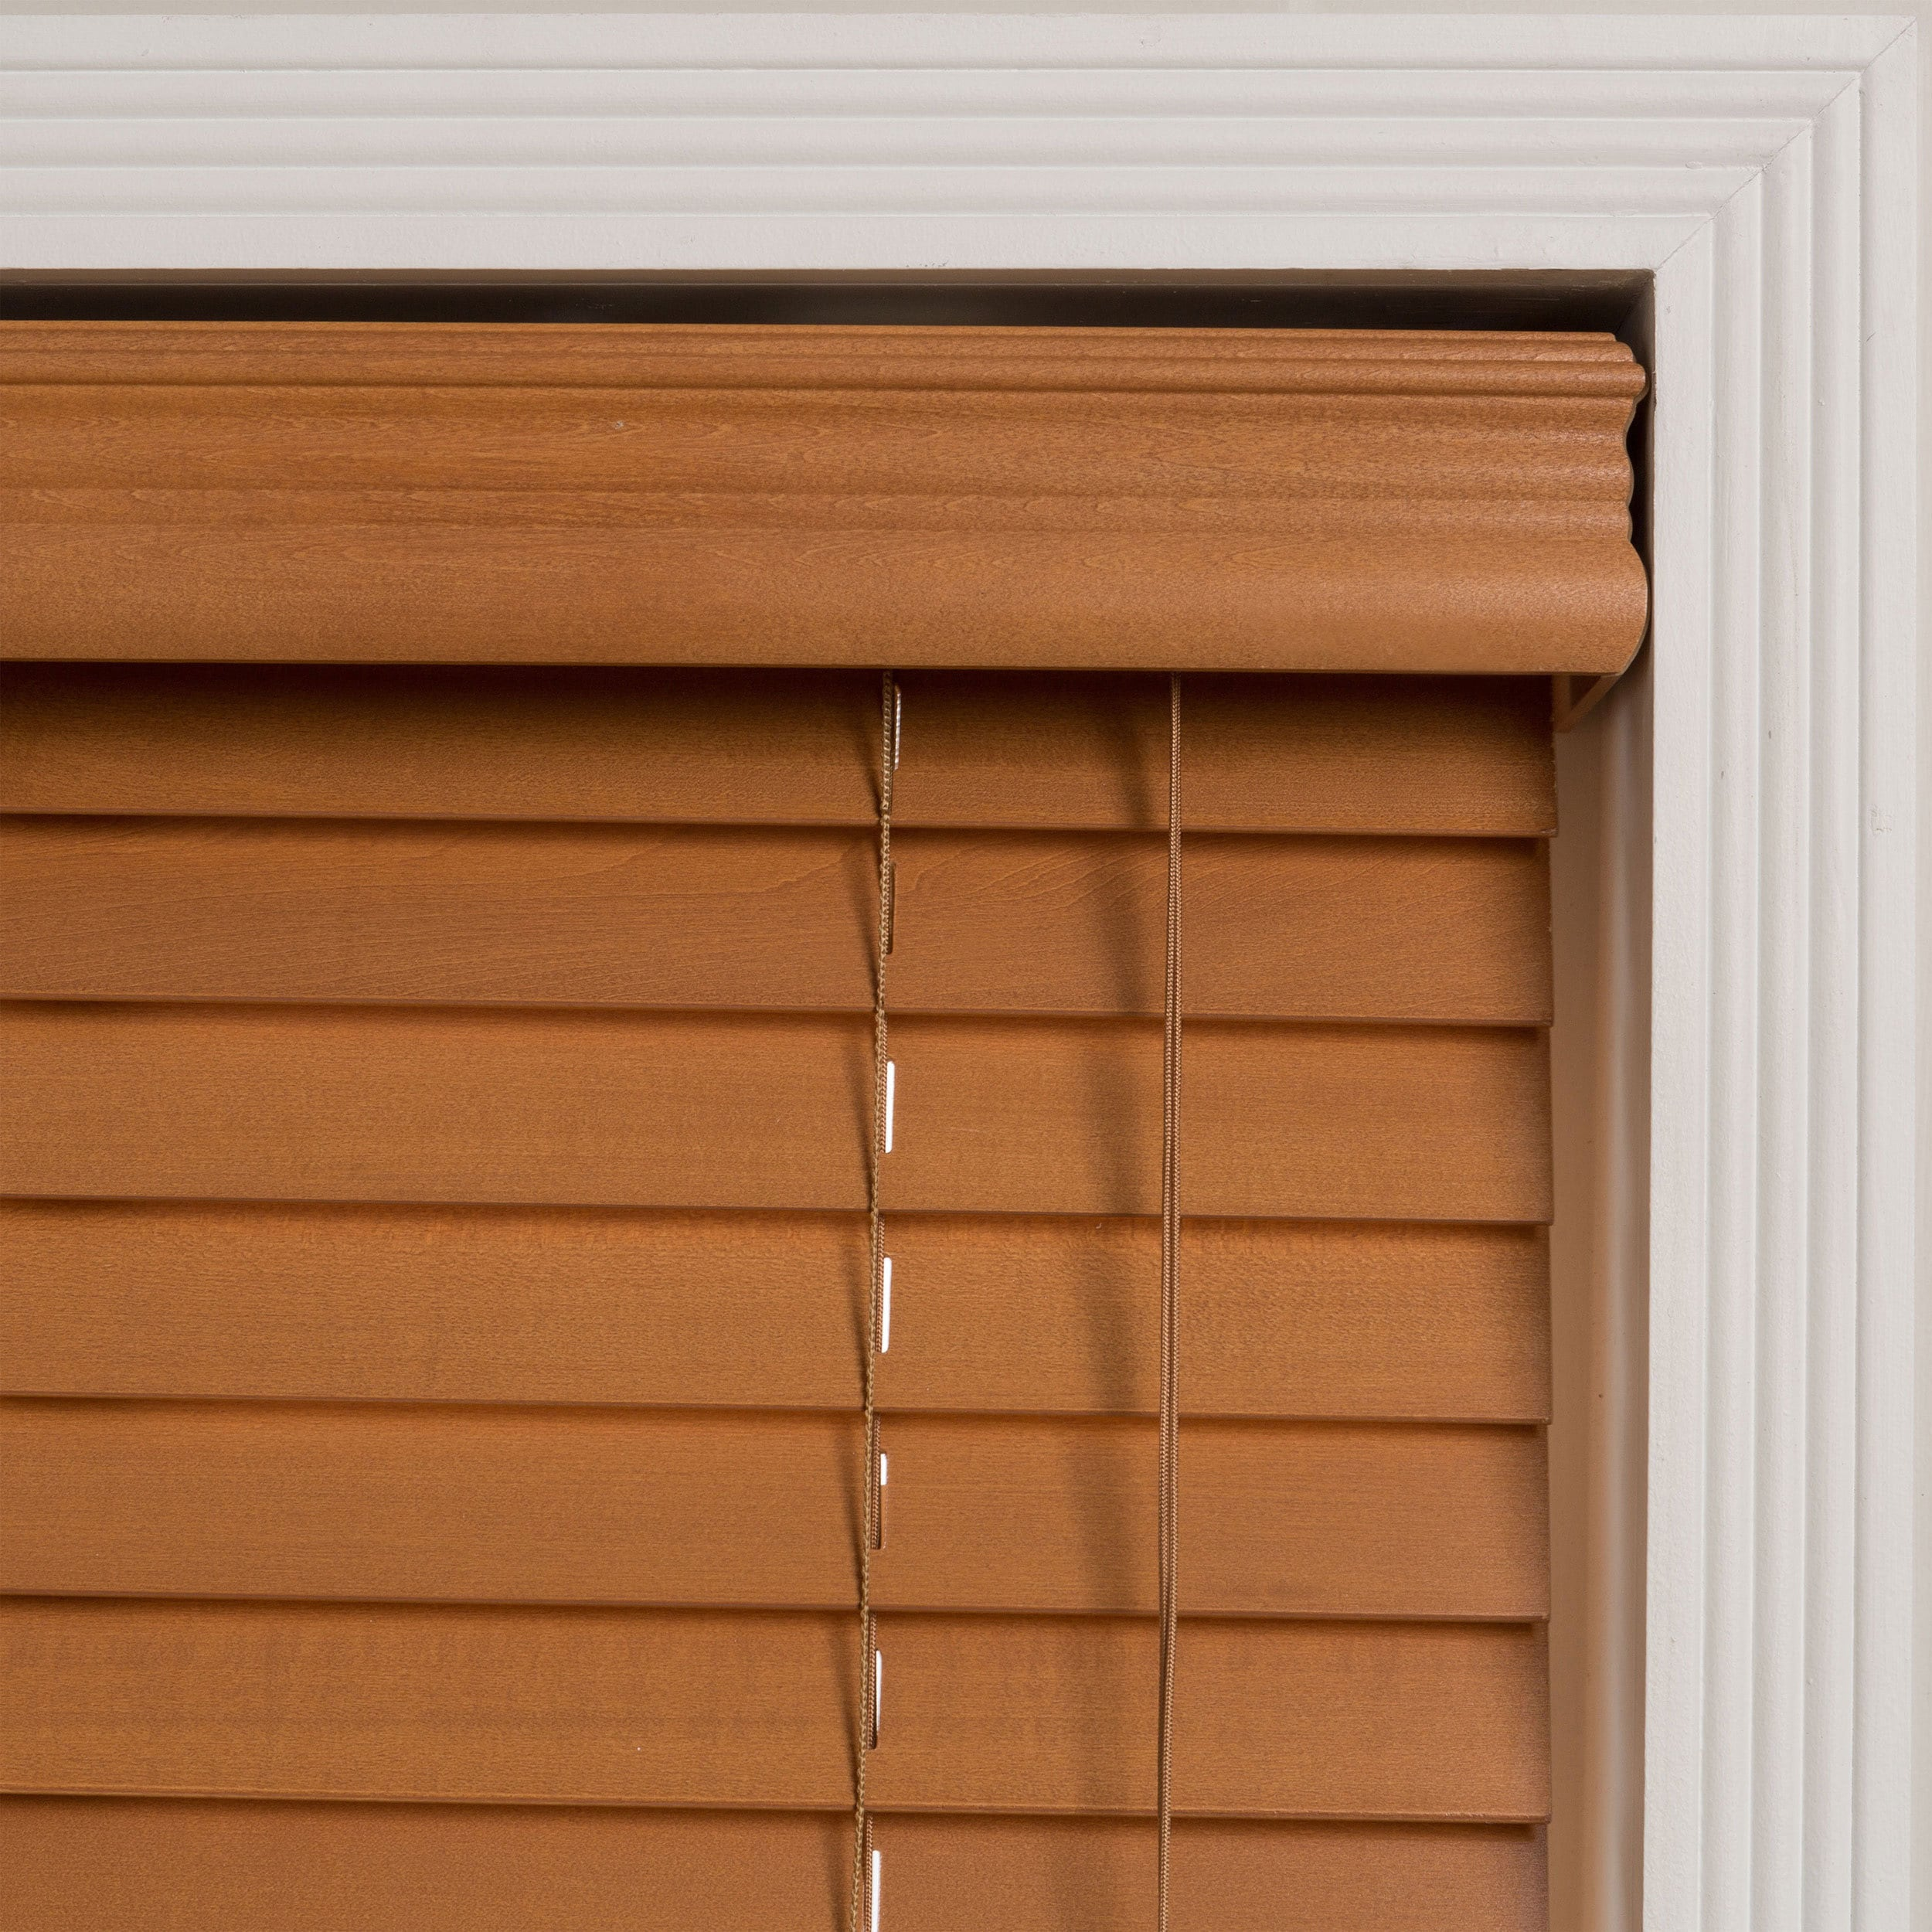 corner window plantation pvc home wooden or shutter product ungmekbcsphx for wrapped white blinds wood vinyl reinforced china